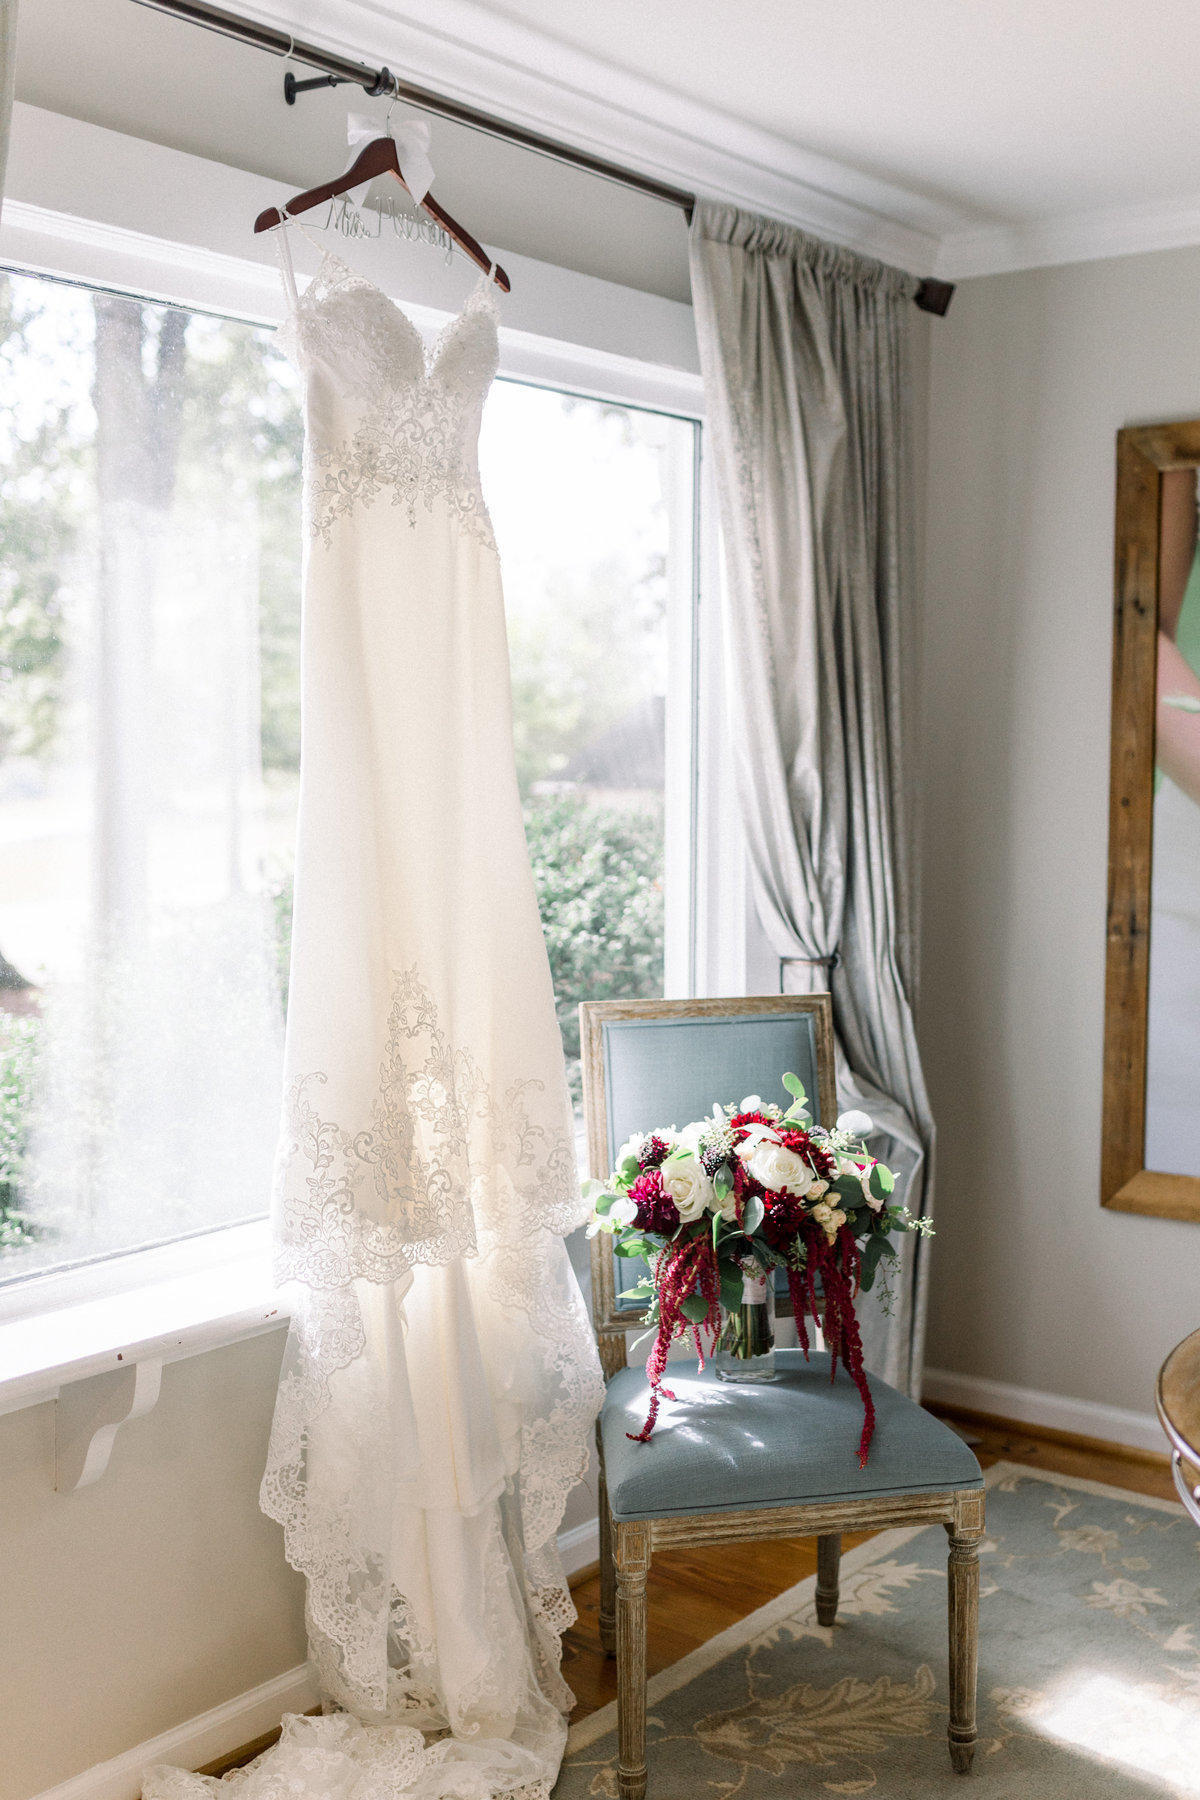 Washington DC Wedding Photography, brides dress hanging up in window